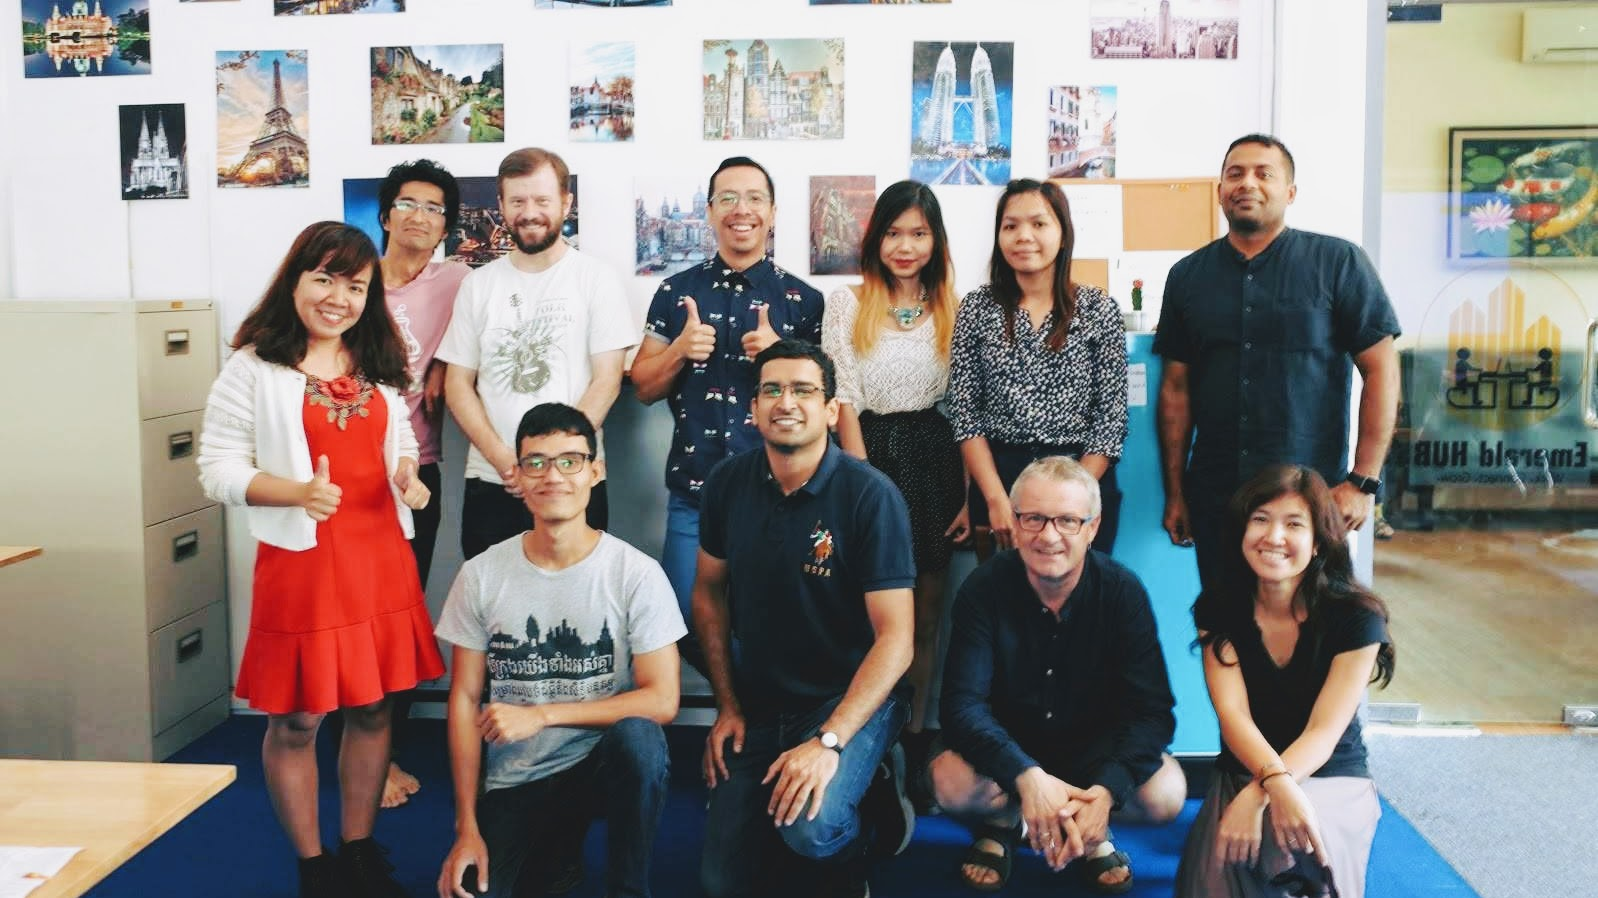 #IdeasCamp speakers and participants pose for a picture at Emerald Hub BKK3.